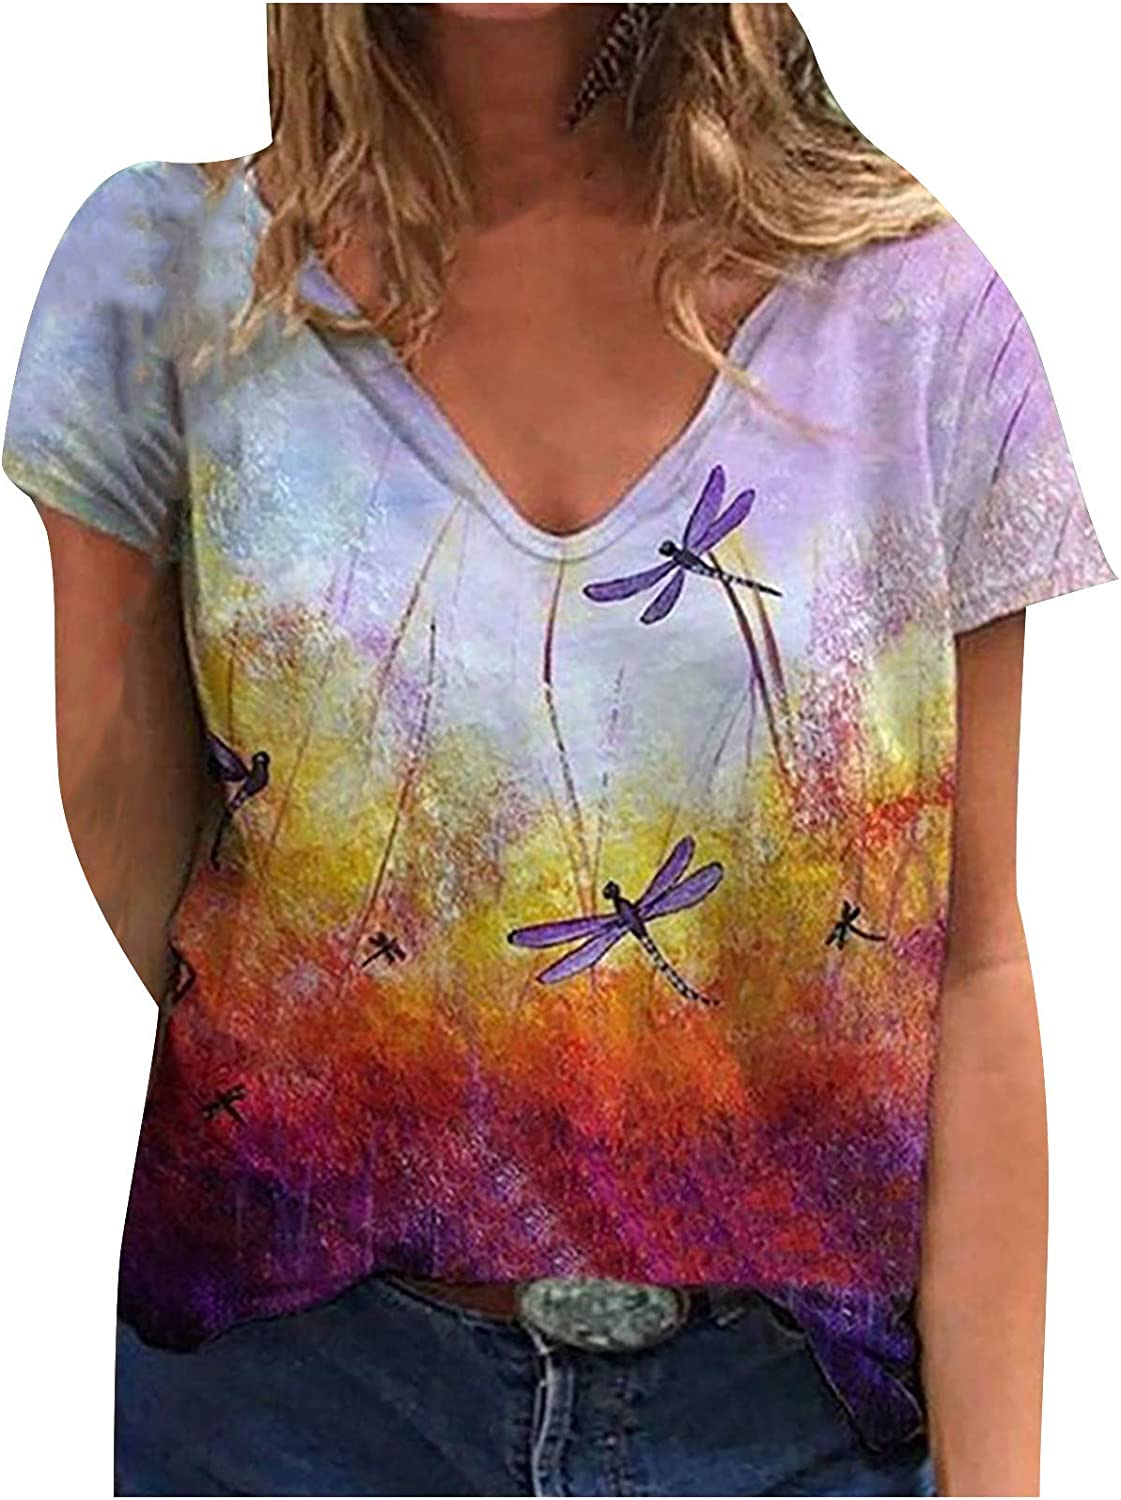 Sunflower New Max 80% OFF Shipping Free Tops for Womens Tie Floral T-Shirts Dye Comfortable Te